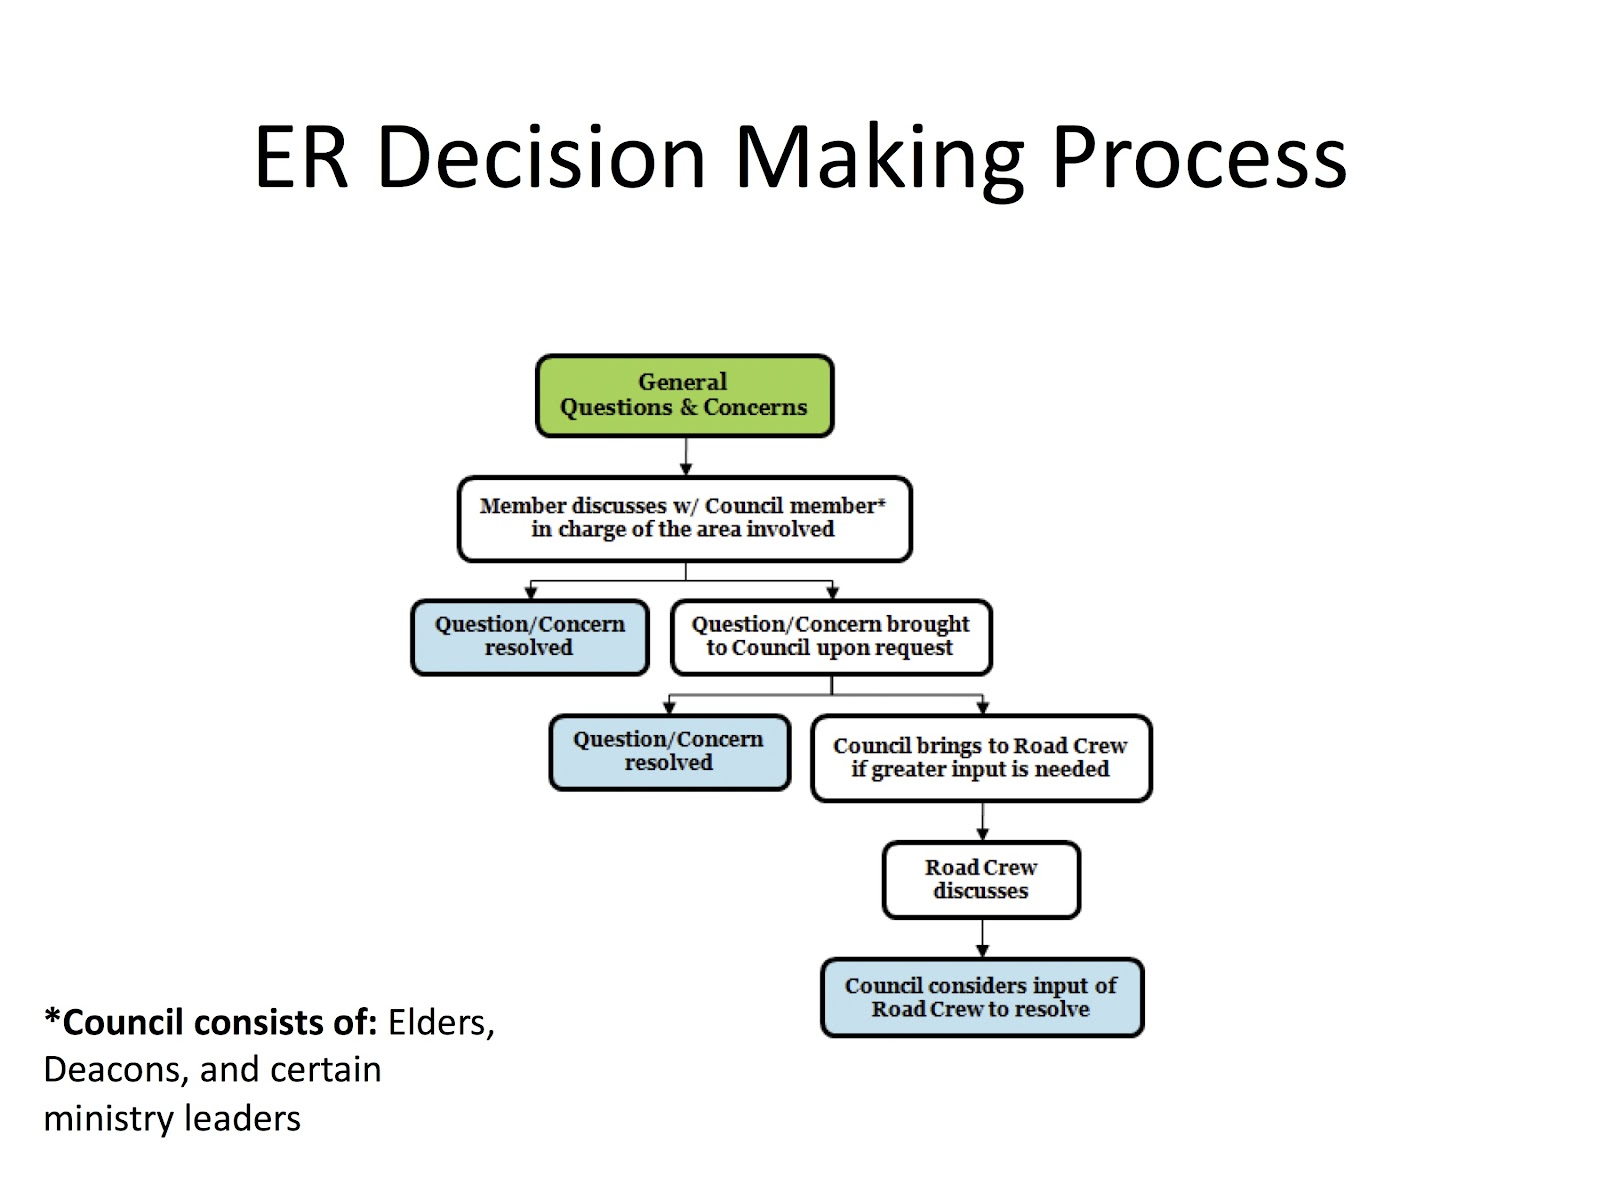 emmaus road crew decision making process flow chart here are some diagrams to illustrate who and how various decisions are shared in our church these flow charts do not cover every possible scenario